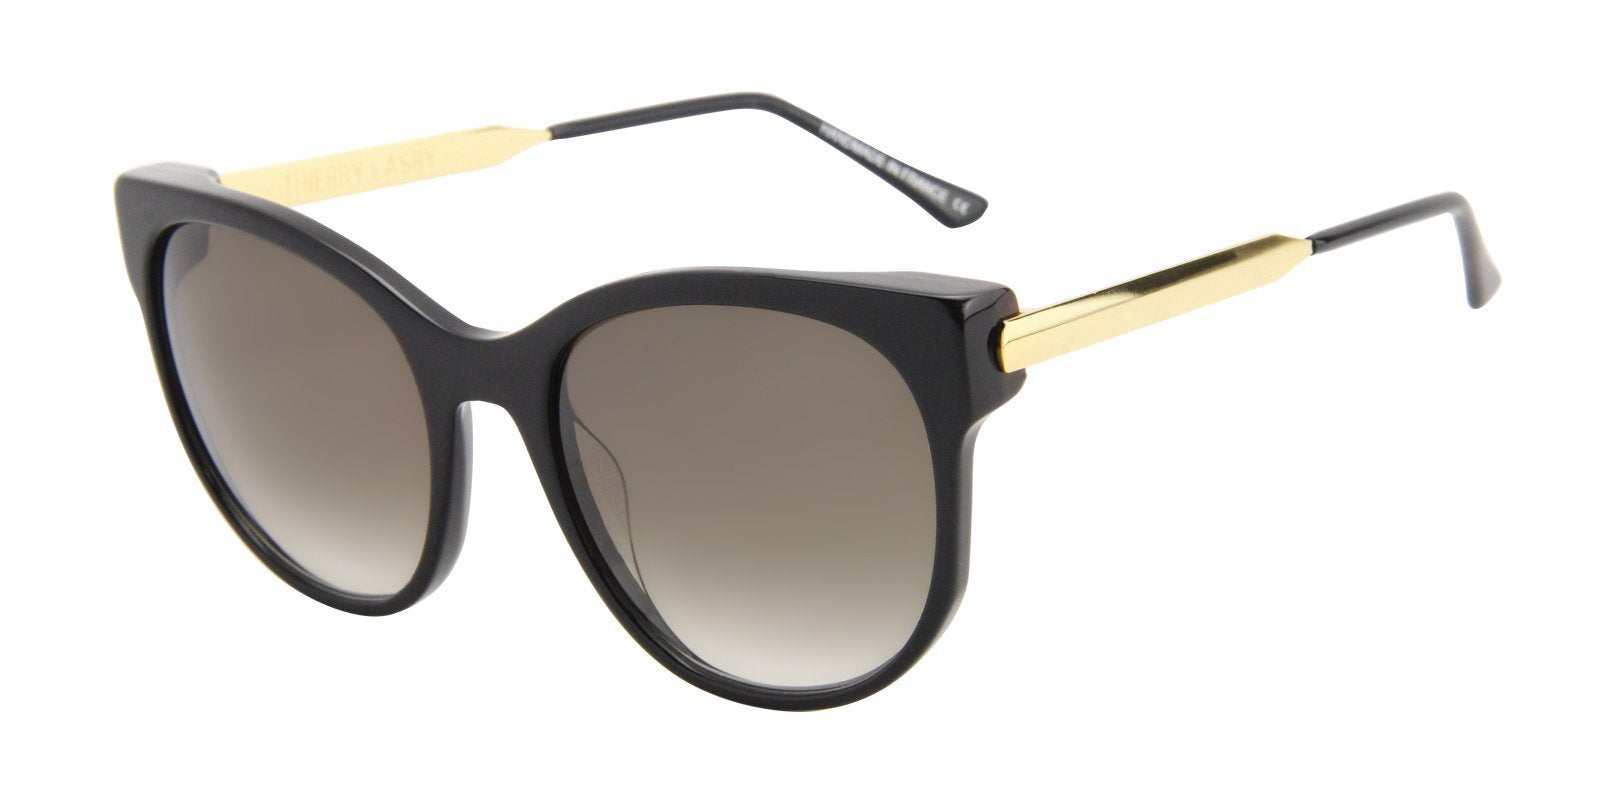 Thierry Lasry - Axxxexxxy Black Oval Women Sunglasses - 56mm-Sunglasses-Designer Eyes